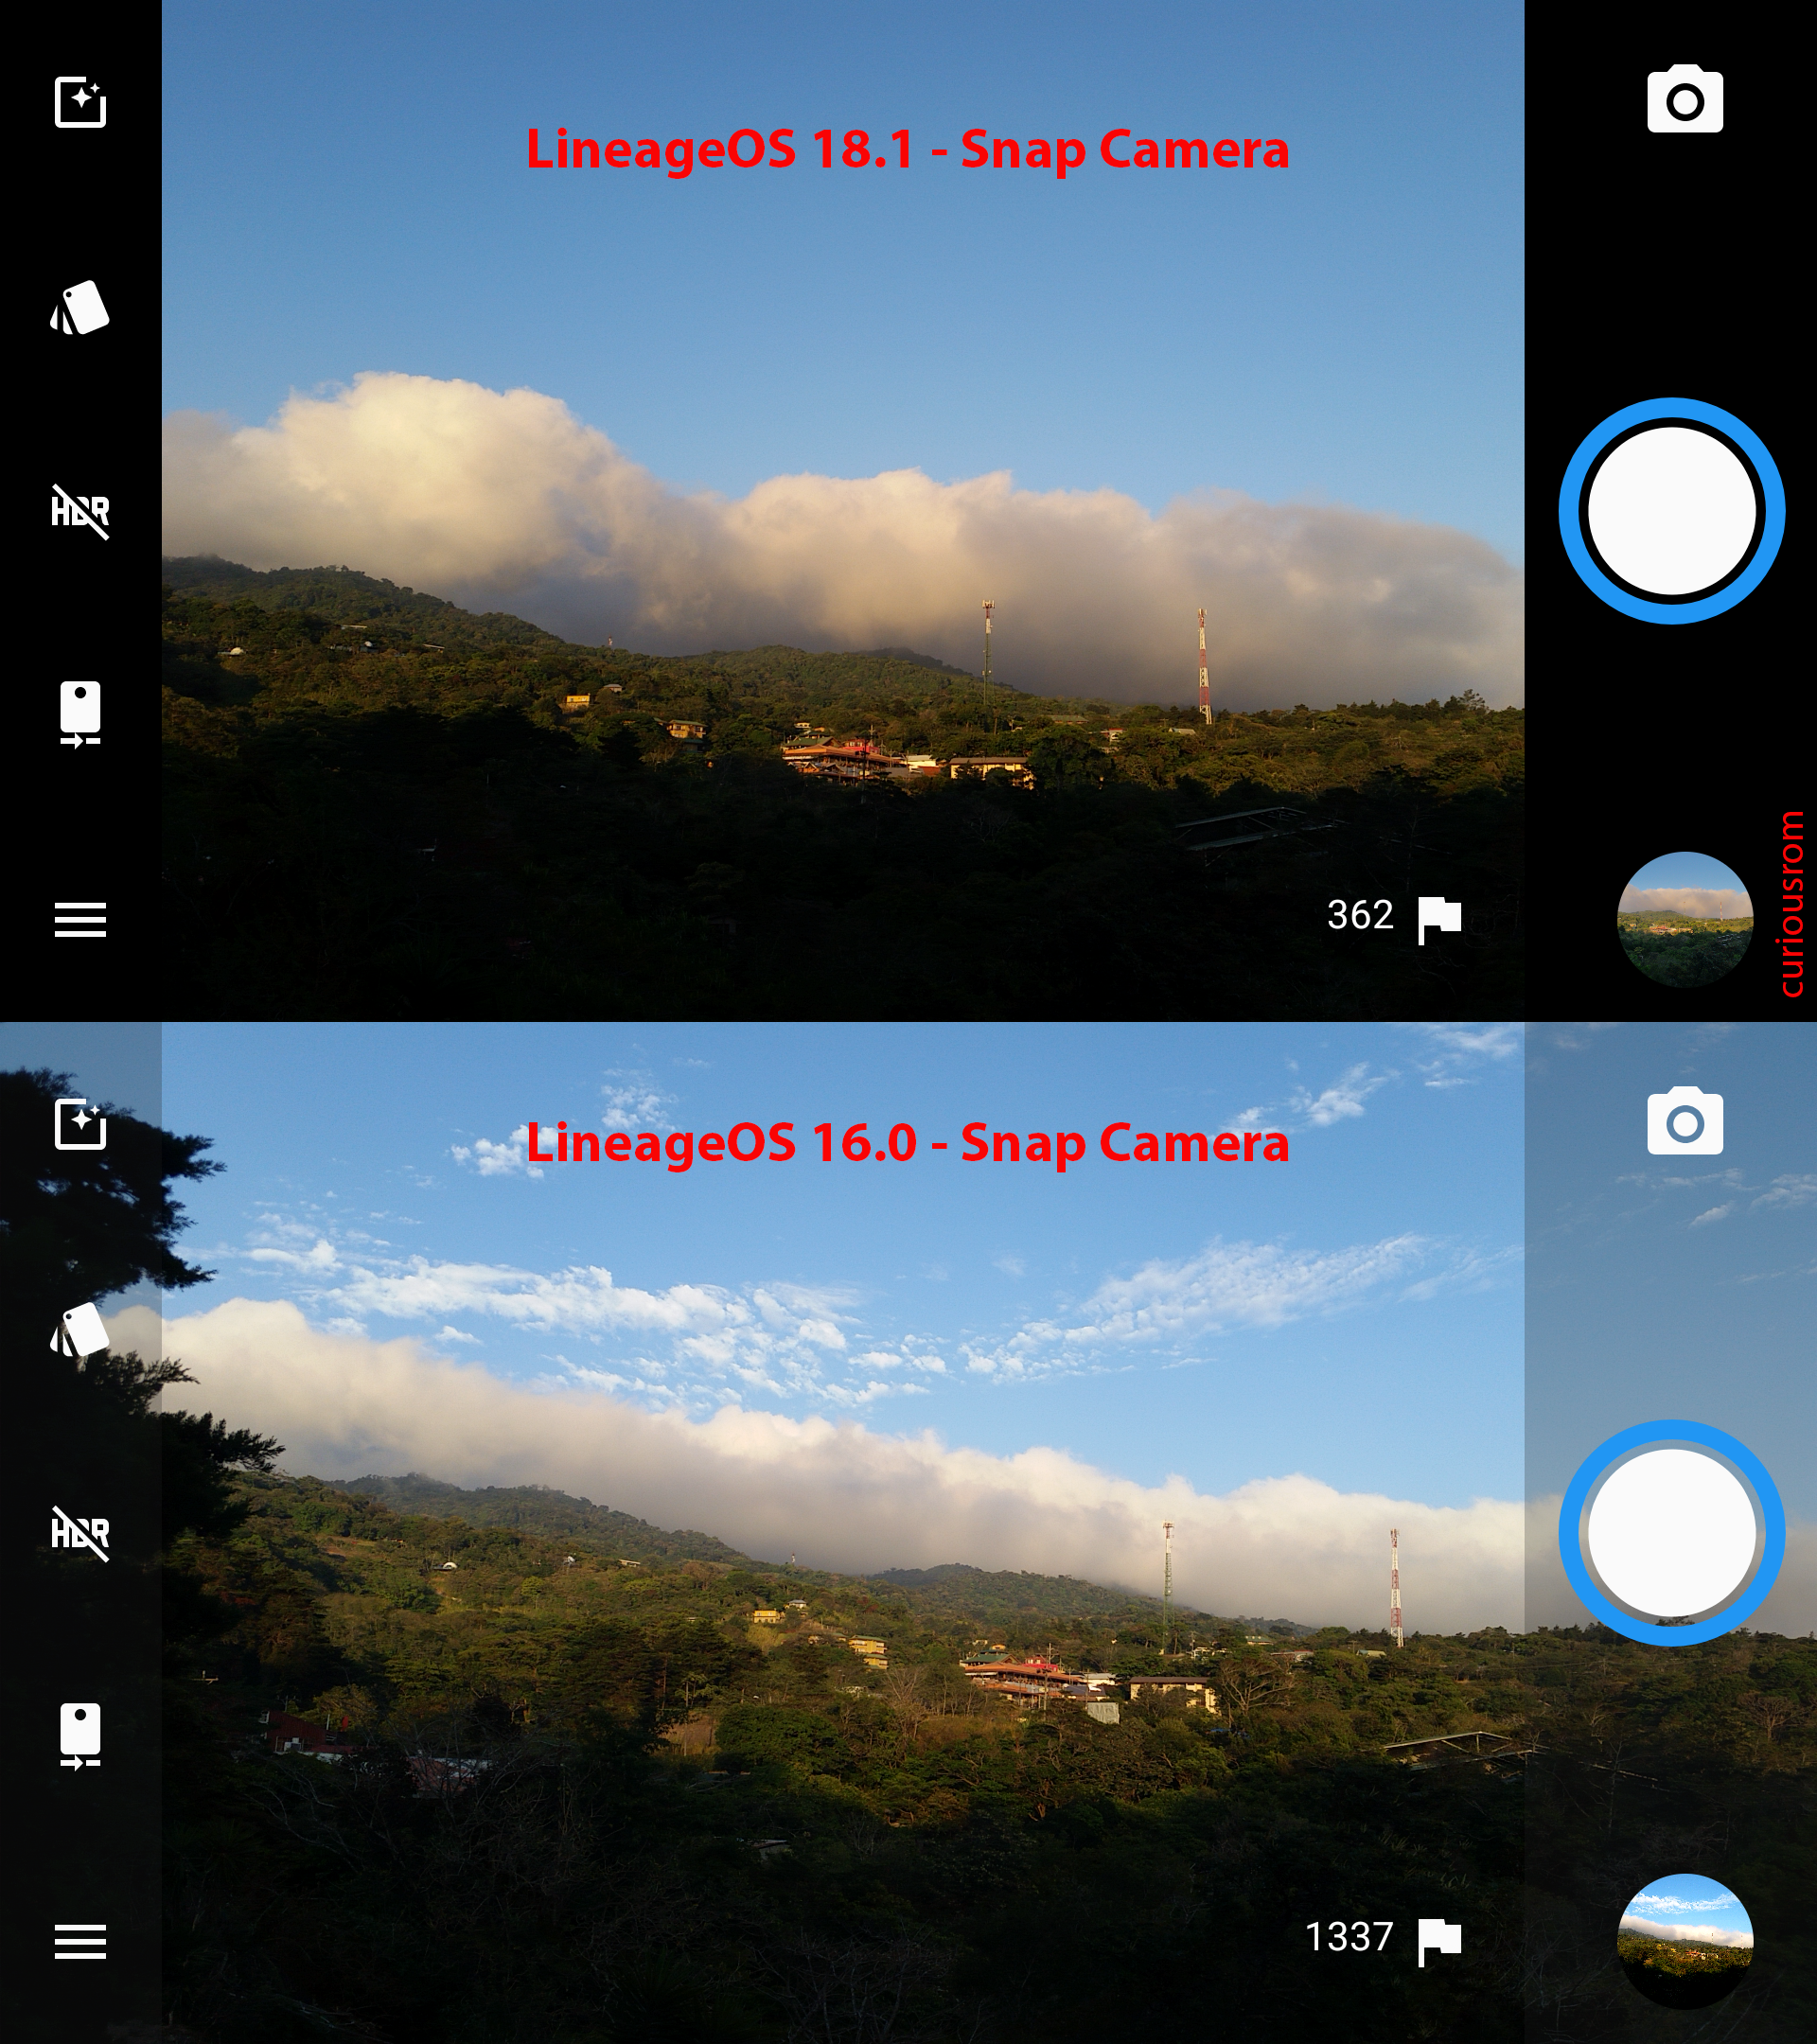 Camera_Snap_vs_Snap_16.0_LineageOS_18-1_S5_curiousrom.png